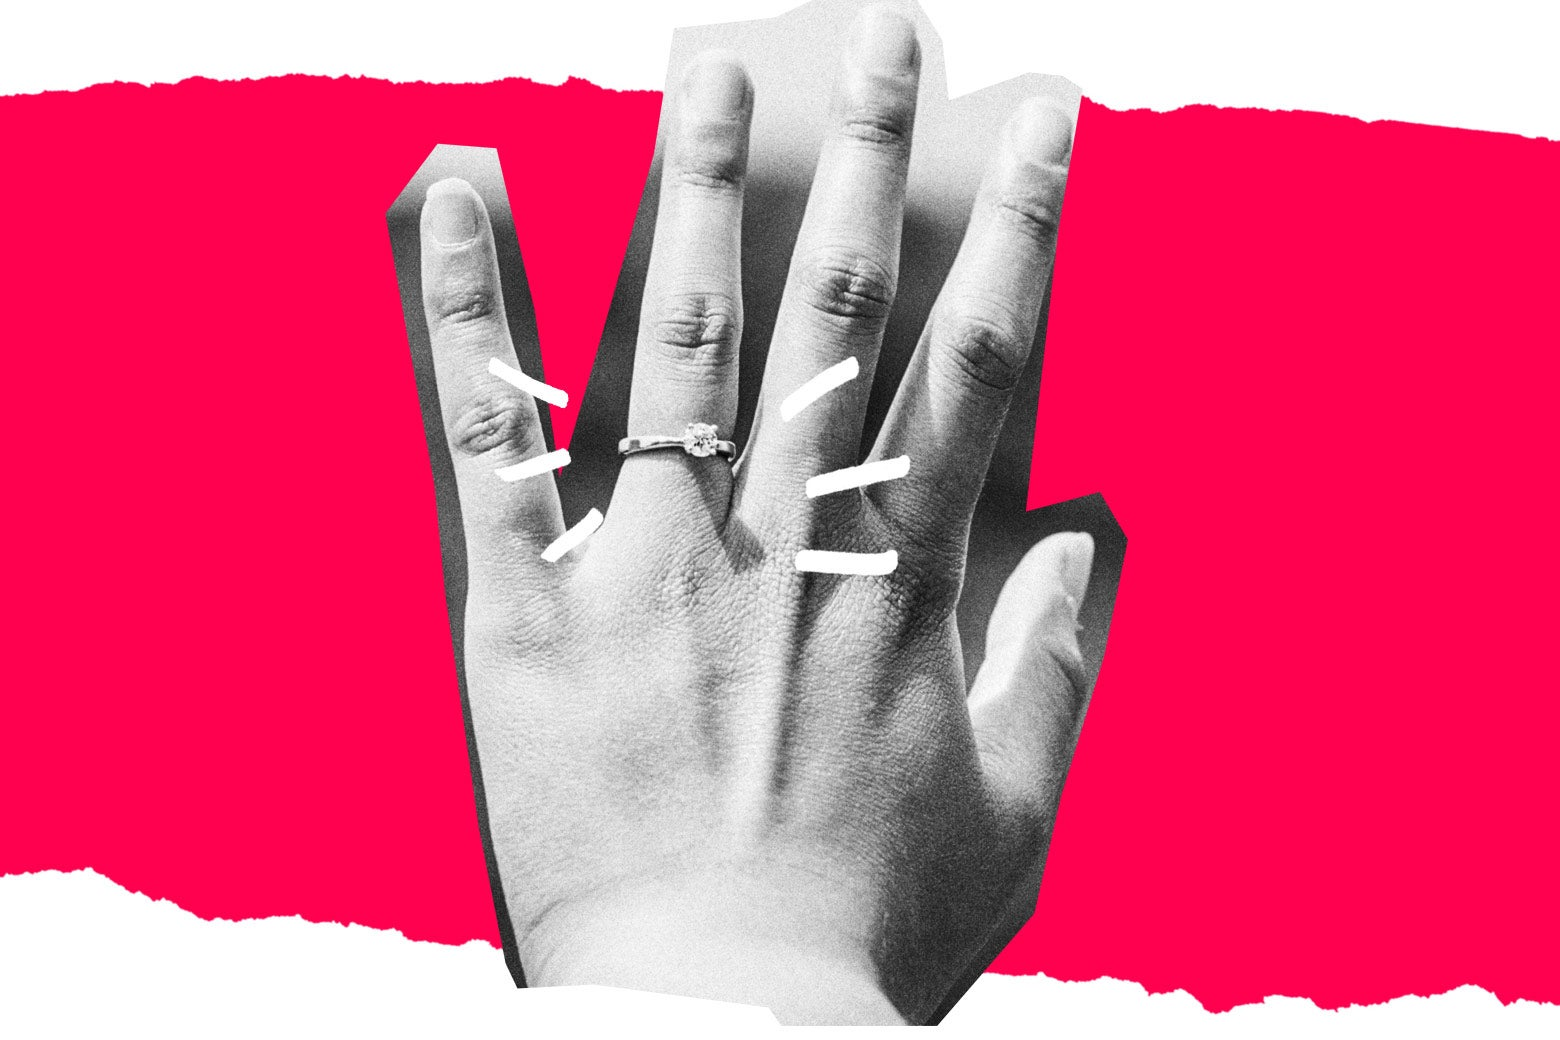 An engagement ring on an outstretched hand.